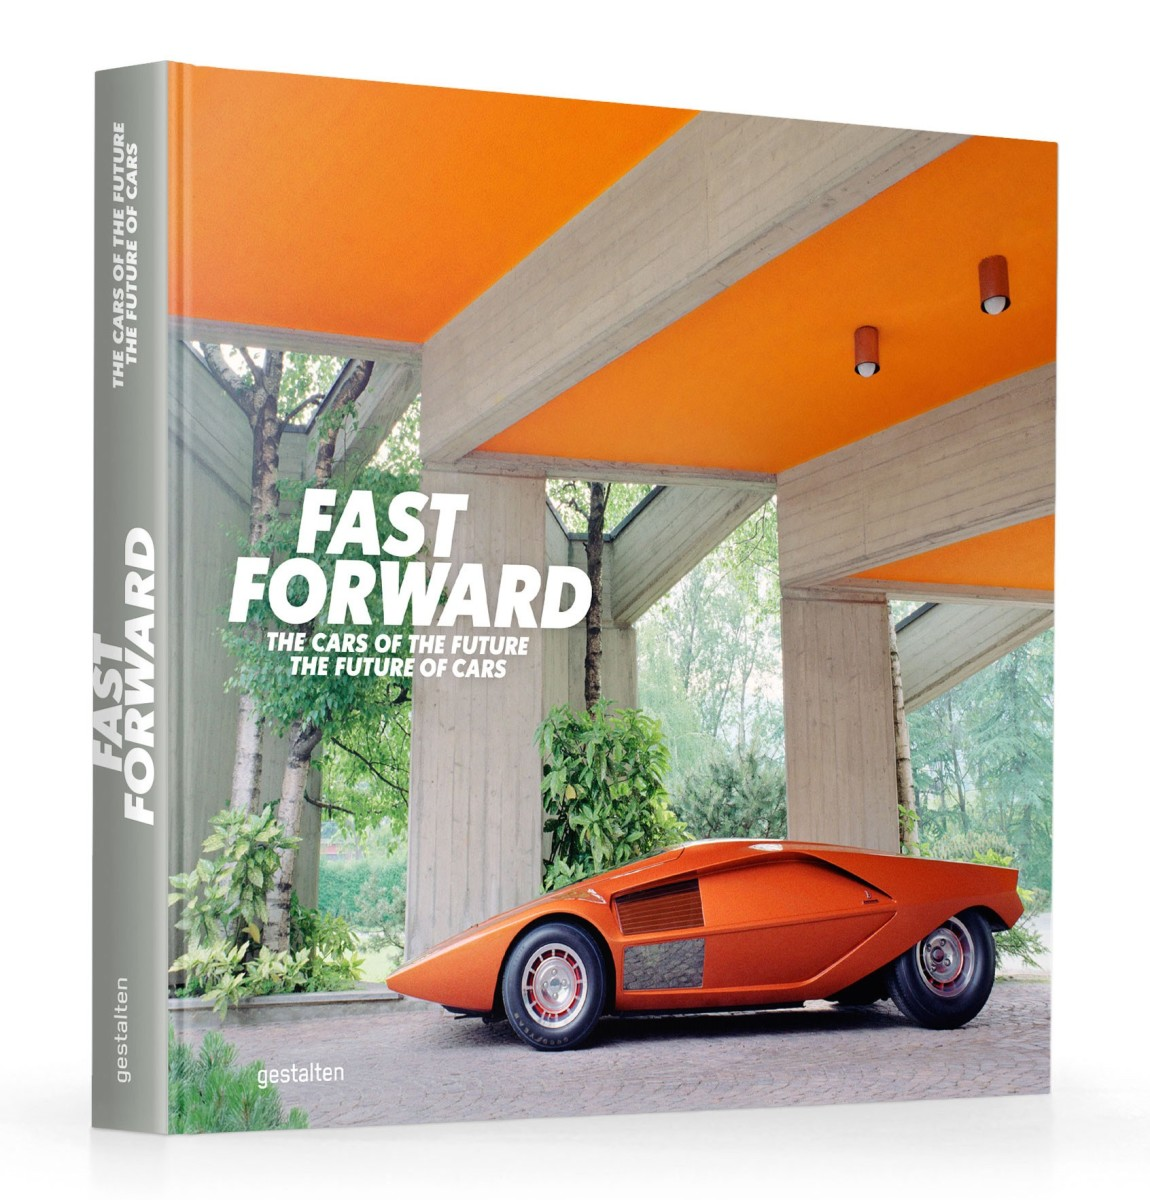 Fast Forward The Cars of the Future The Future of Cars